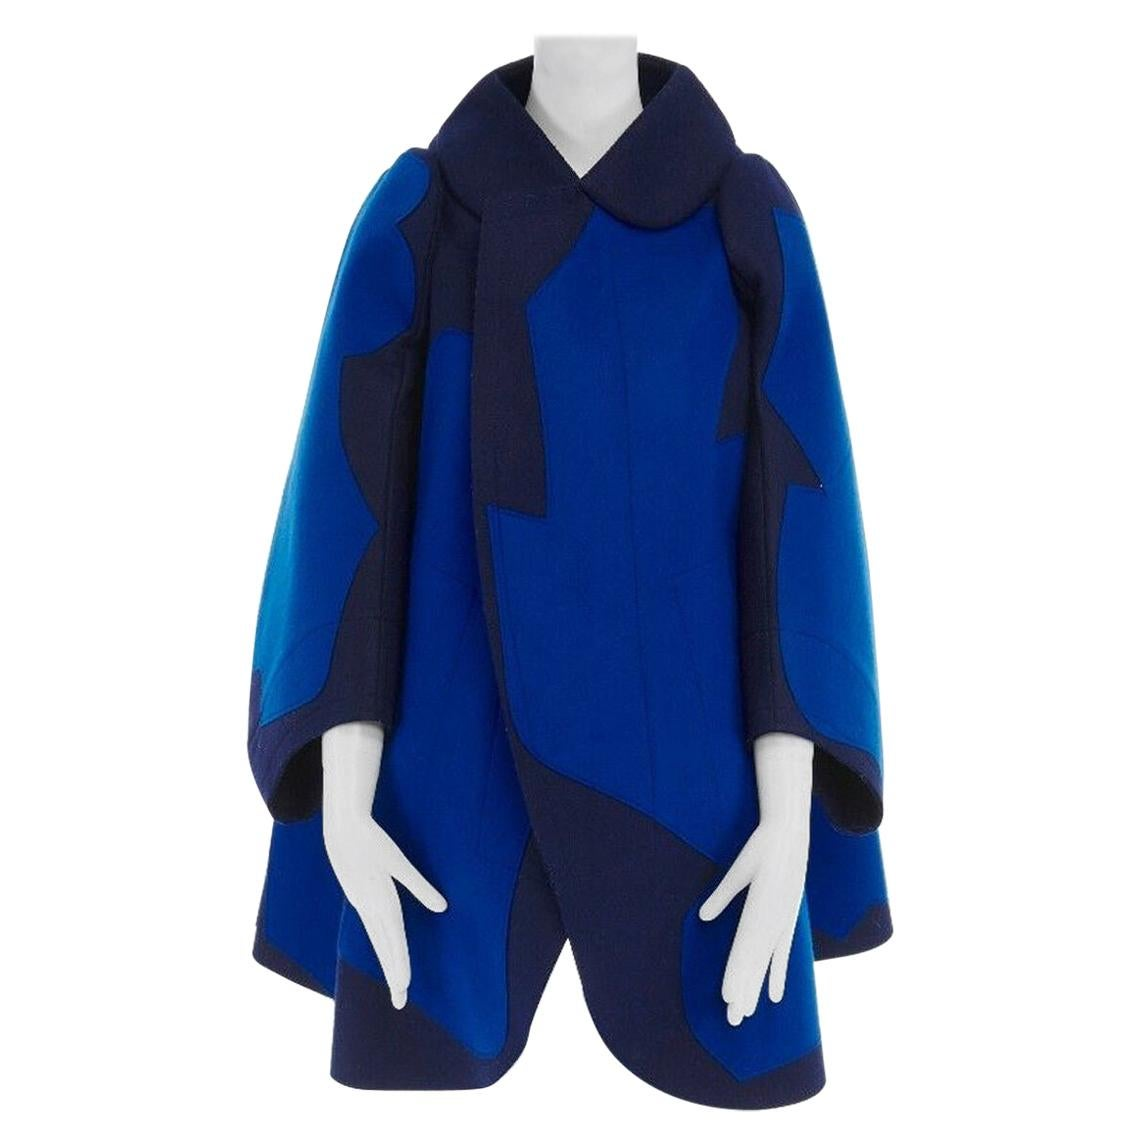 new COMME DES GARCONS AD2012 flatpacked 2D blue abstract shape wool felt coat XS